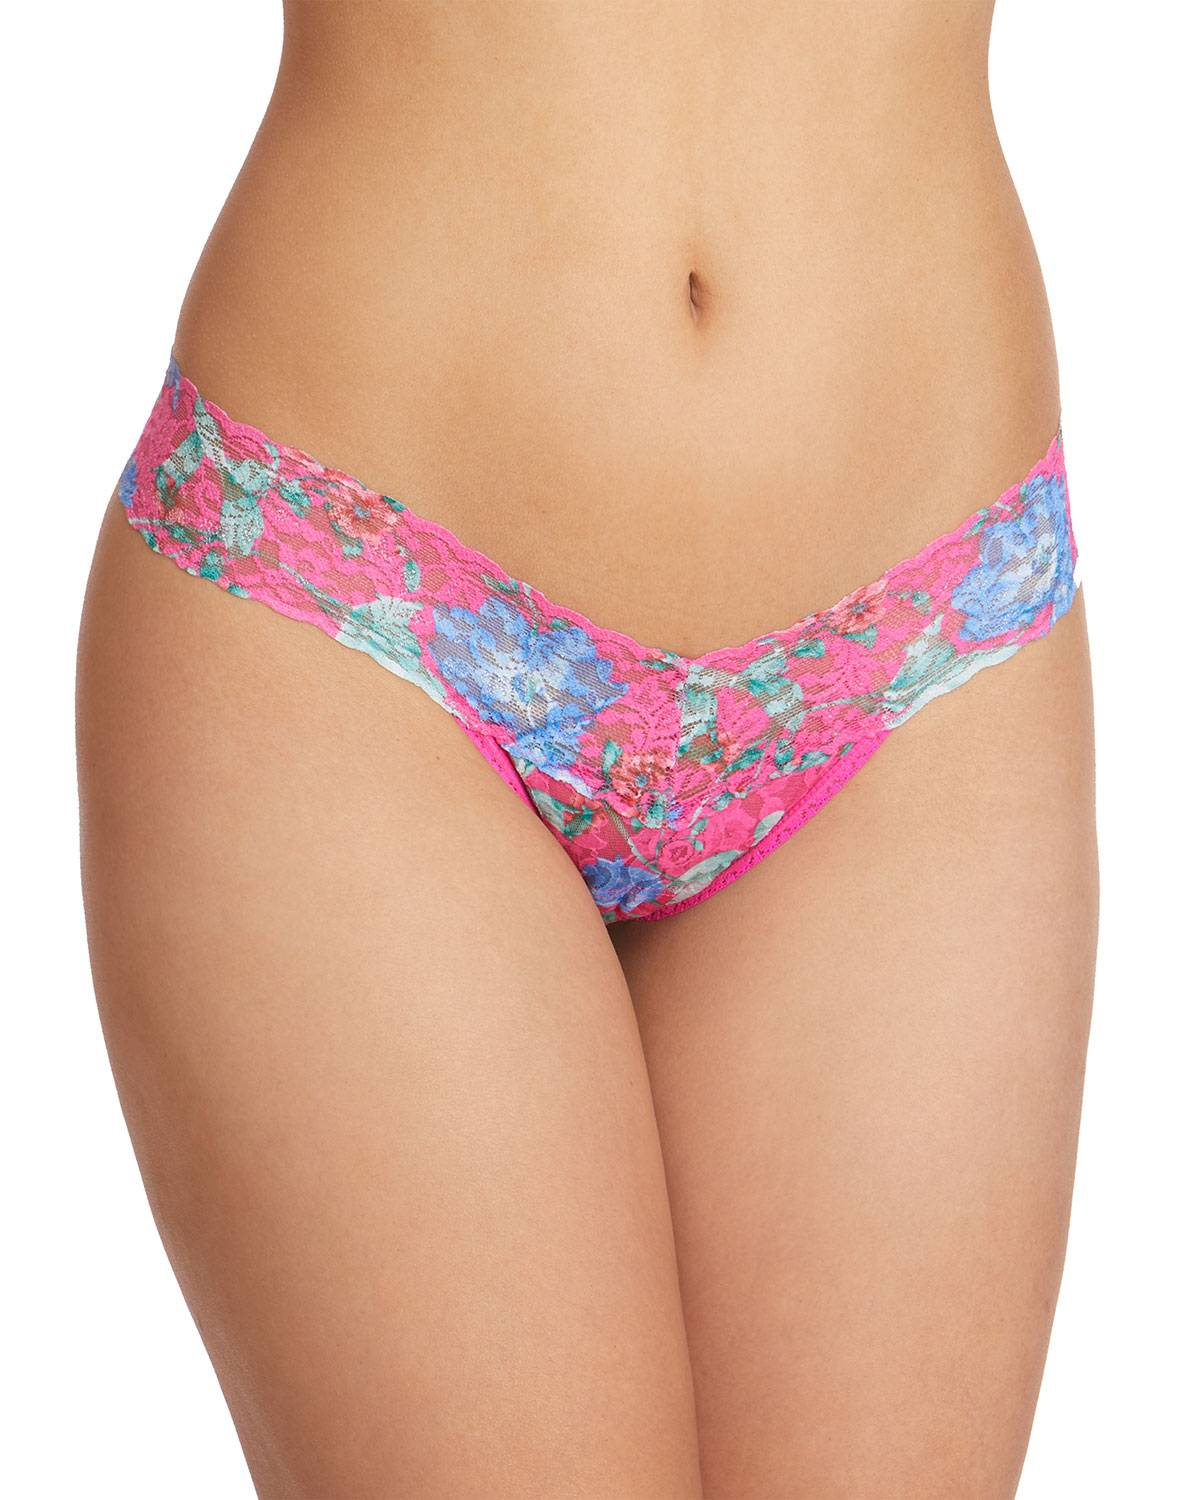 Hanky Panky Electric Garden Low-Rise Signature Lace Thong  - female - MULTI